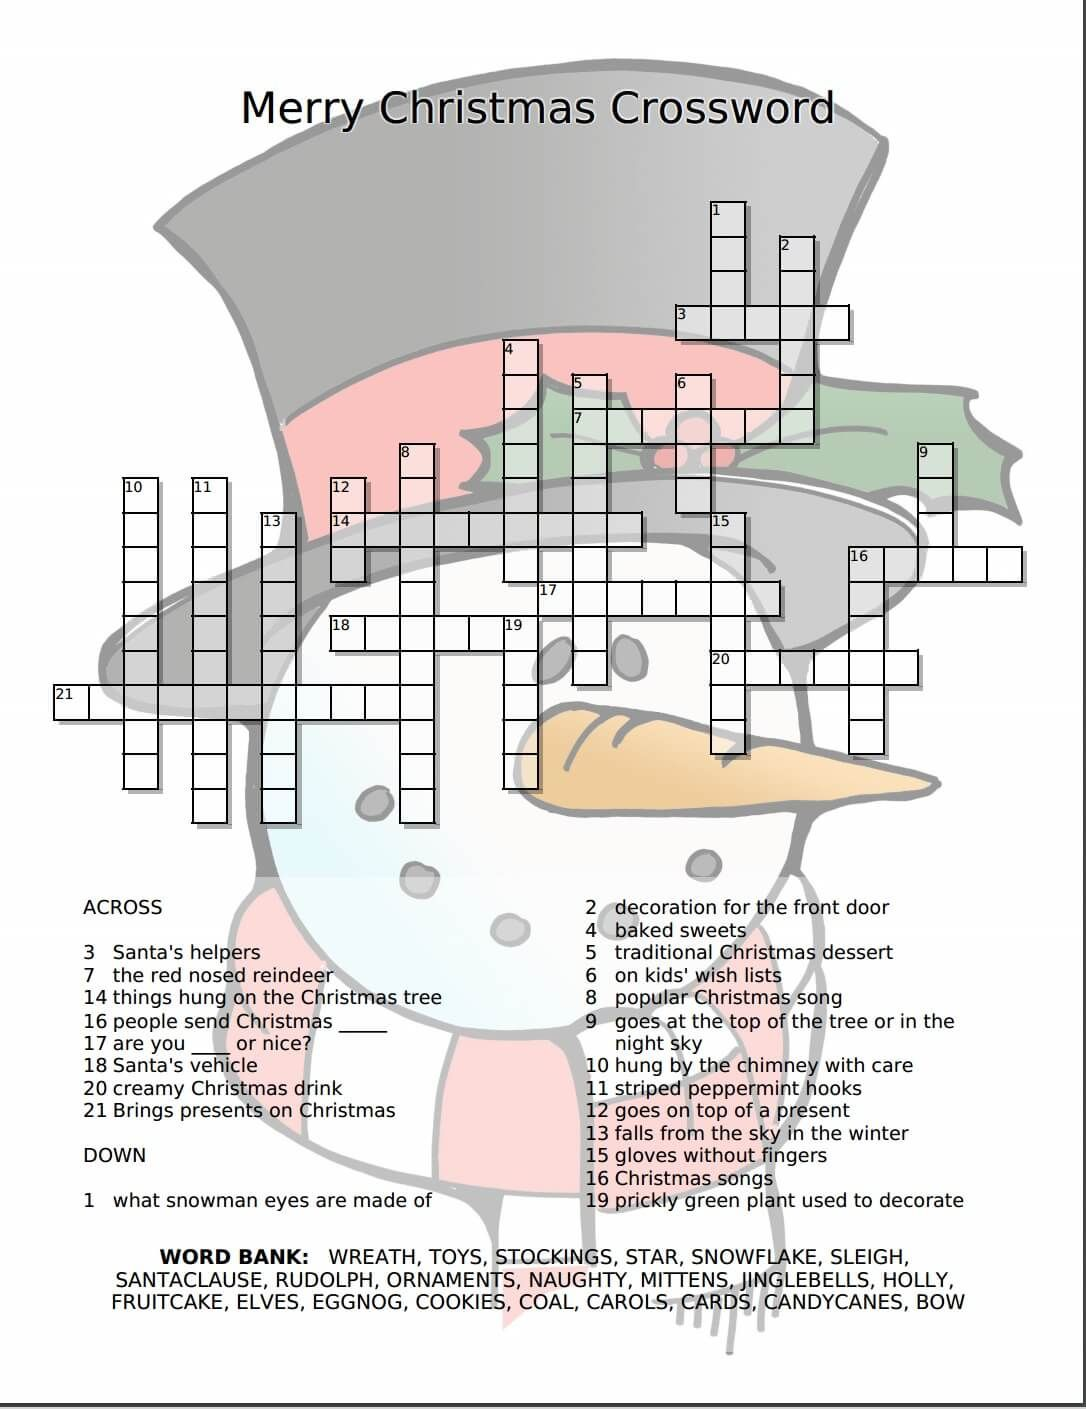 Merry Christmas Crossword Free Printable Christmas Crossword